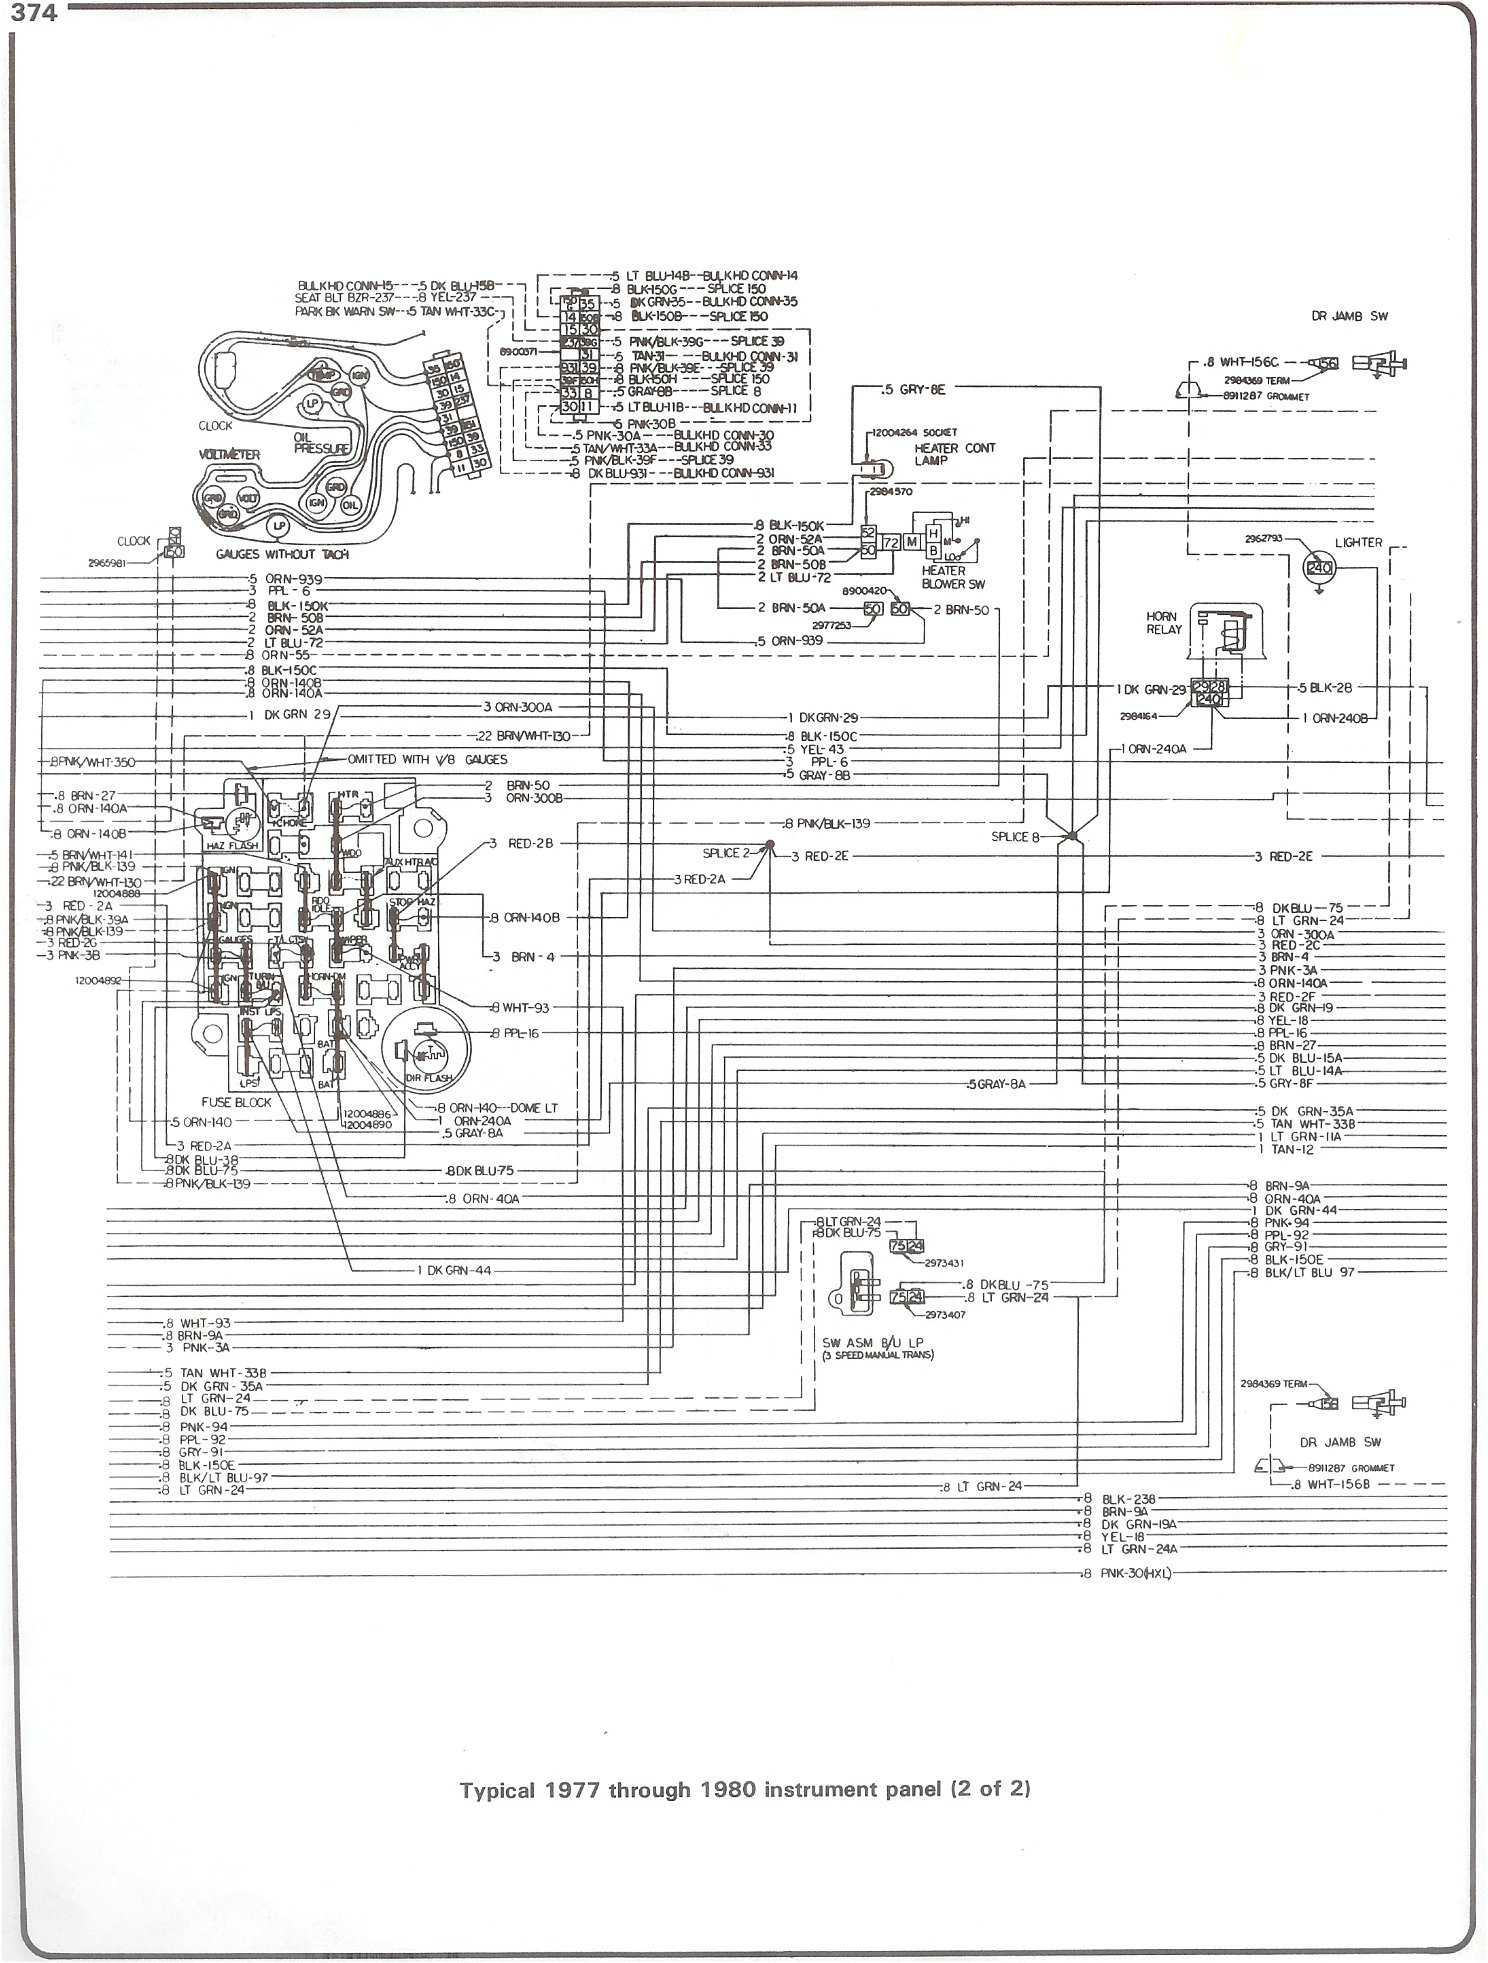 Schematic Drawings For 1985 S 10 Pickup Truck Download Wiring F700 Fuse Box Complete 73 87 Diagrams Rh Forum 87chevytrucks Com Diagram 1981 Chevrolet